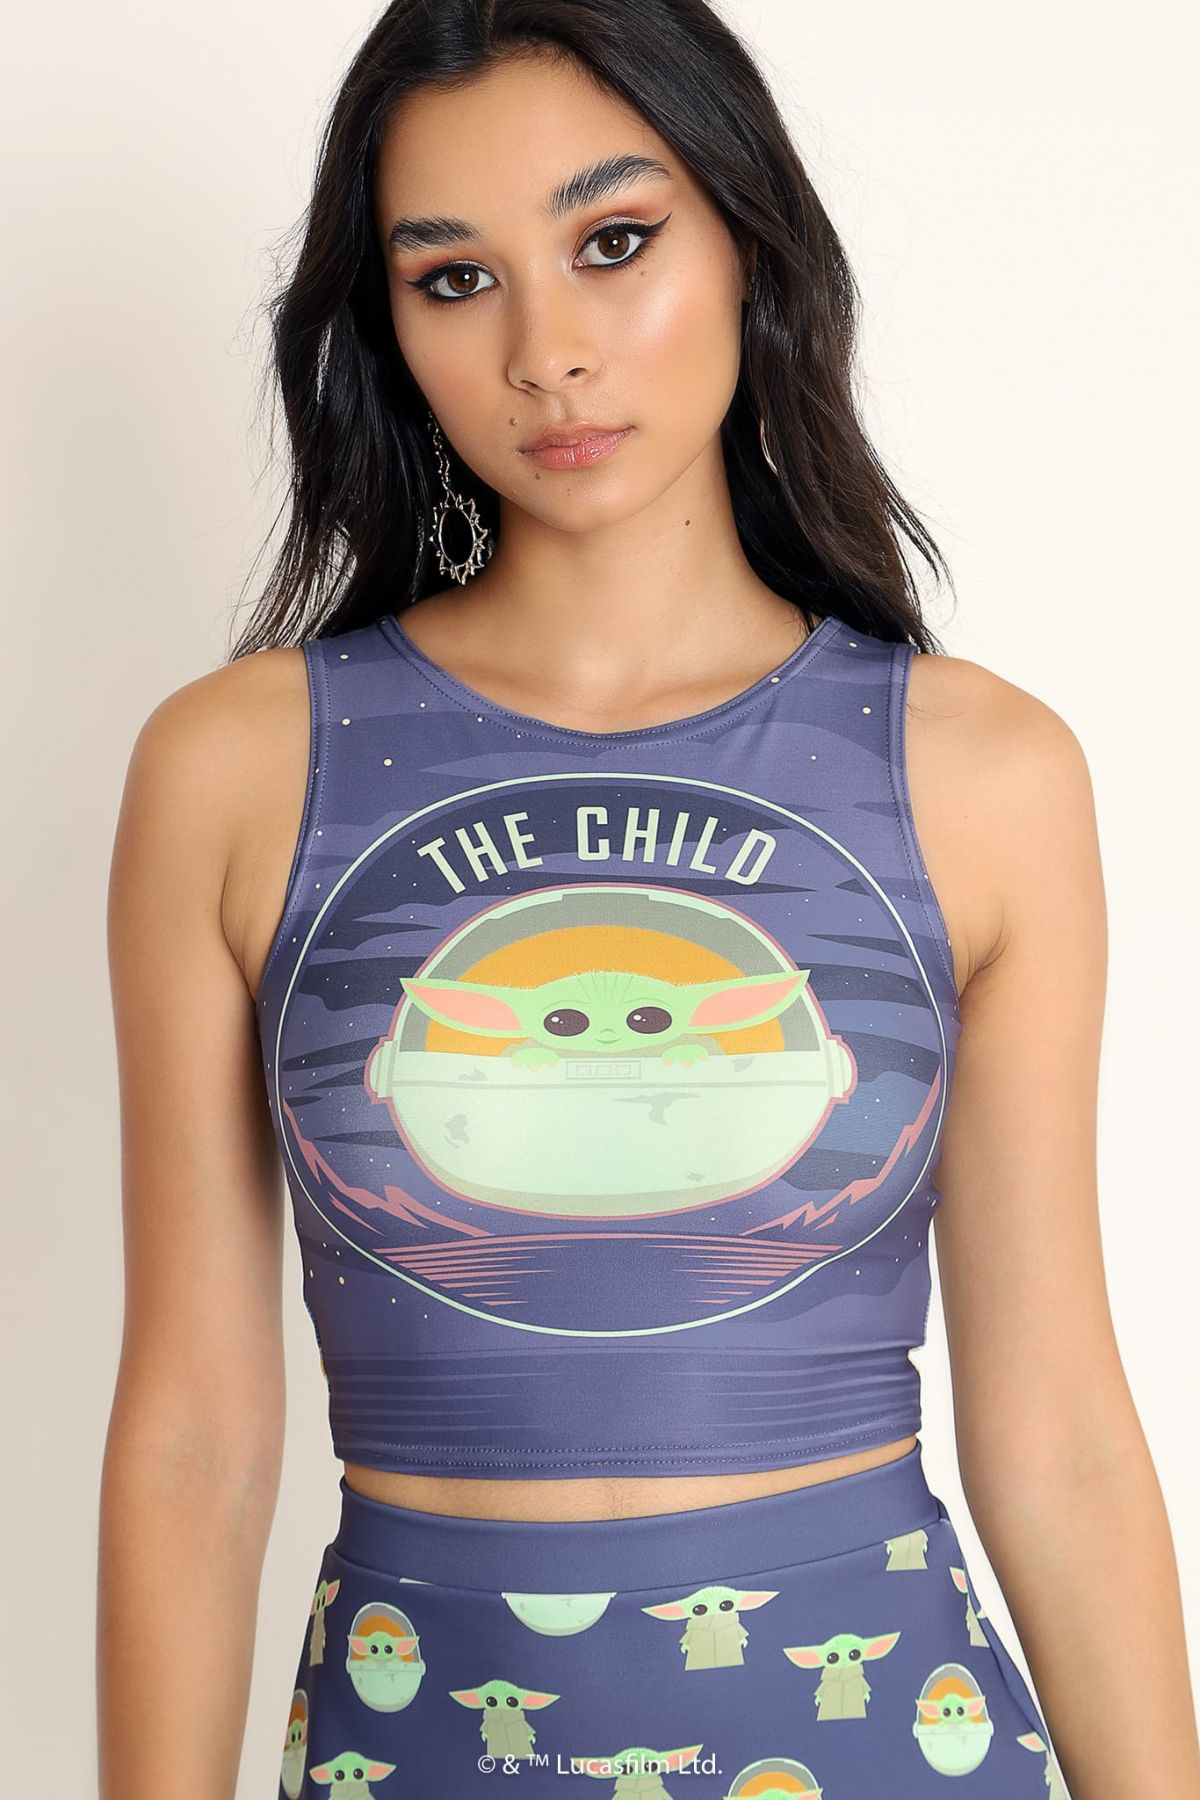 News Now You Can Literally Wear Your Baby Yoda Love On